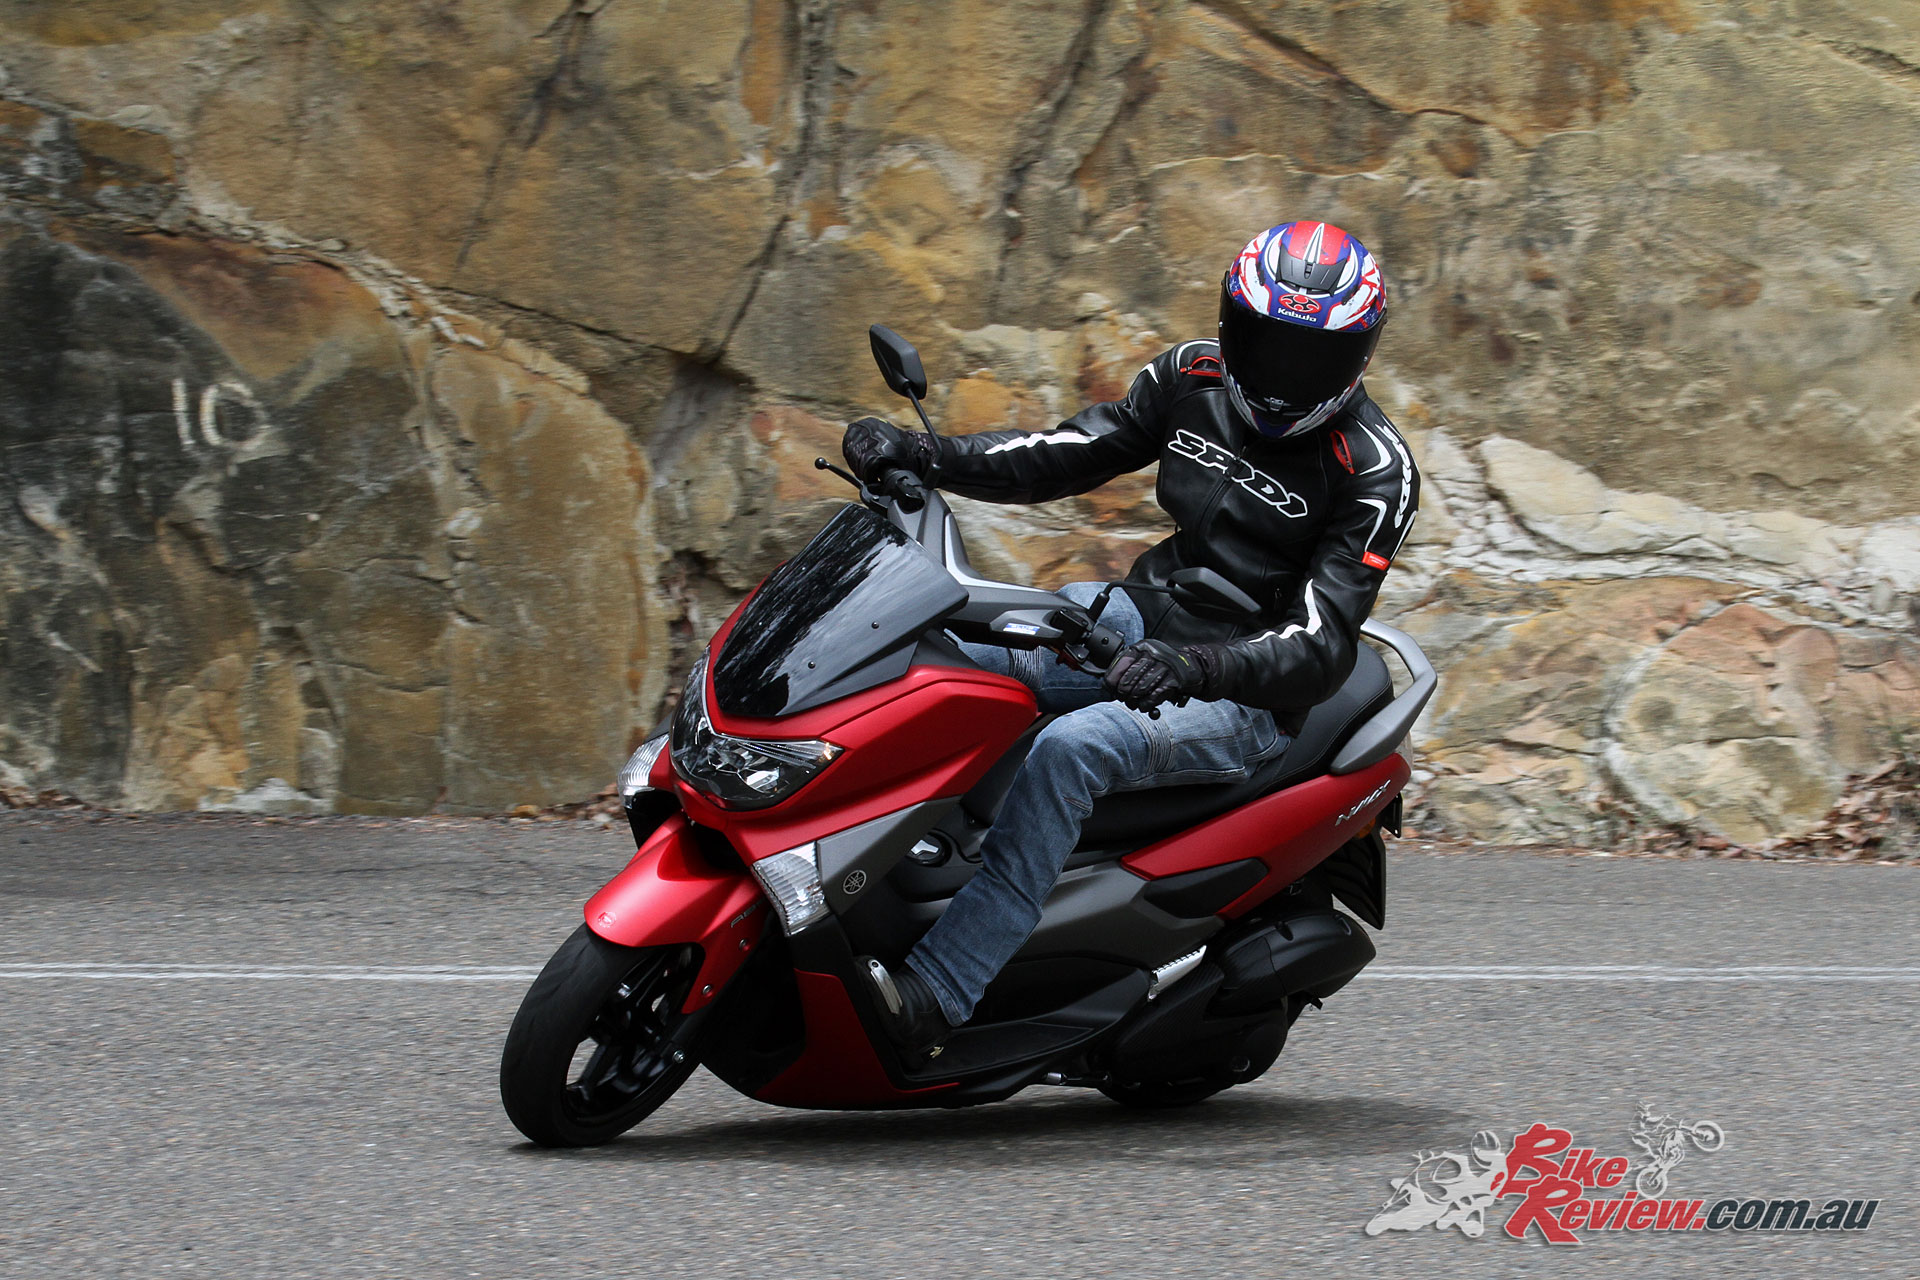 NMAX 2019: Video Review: 2018 Yamaha NMAX 155 Scooter